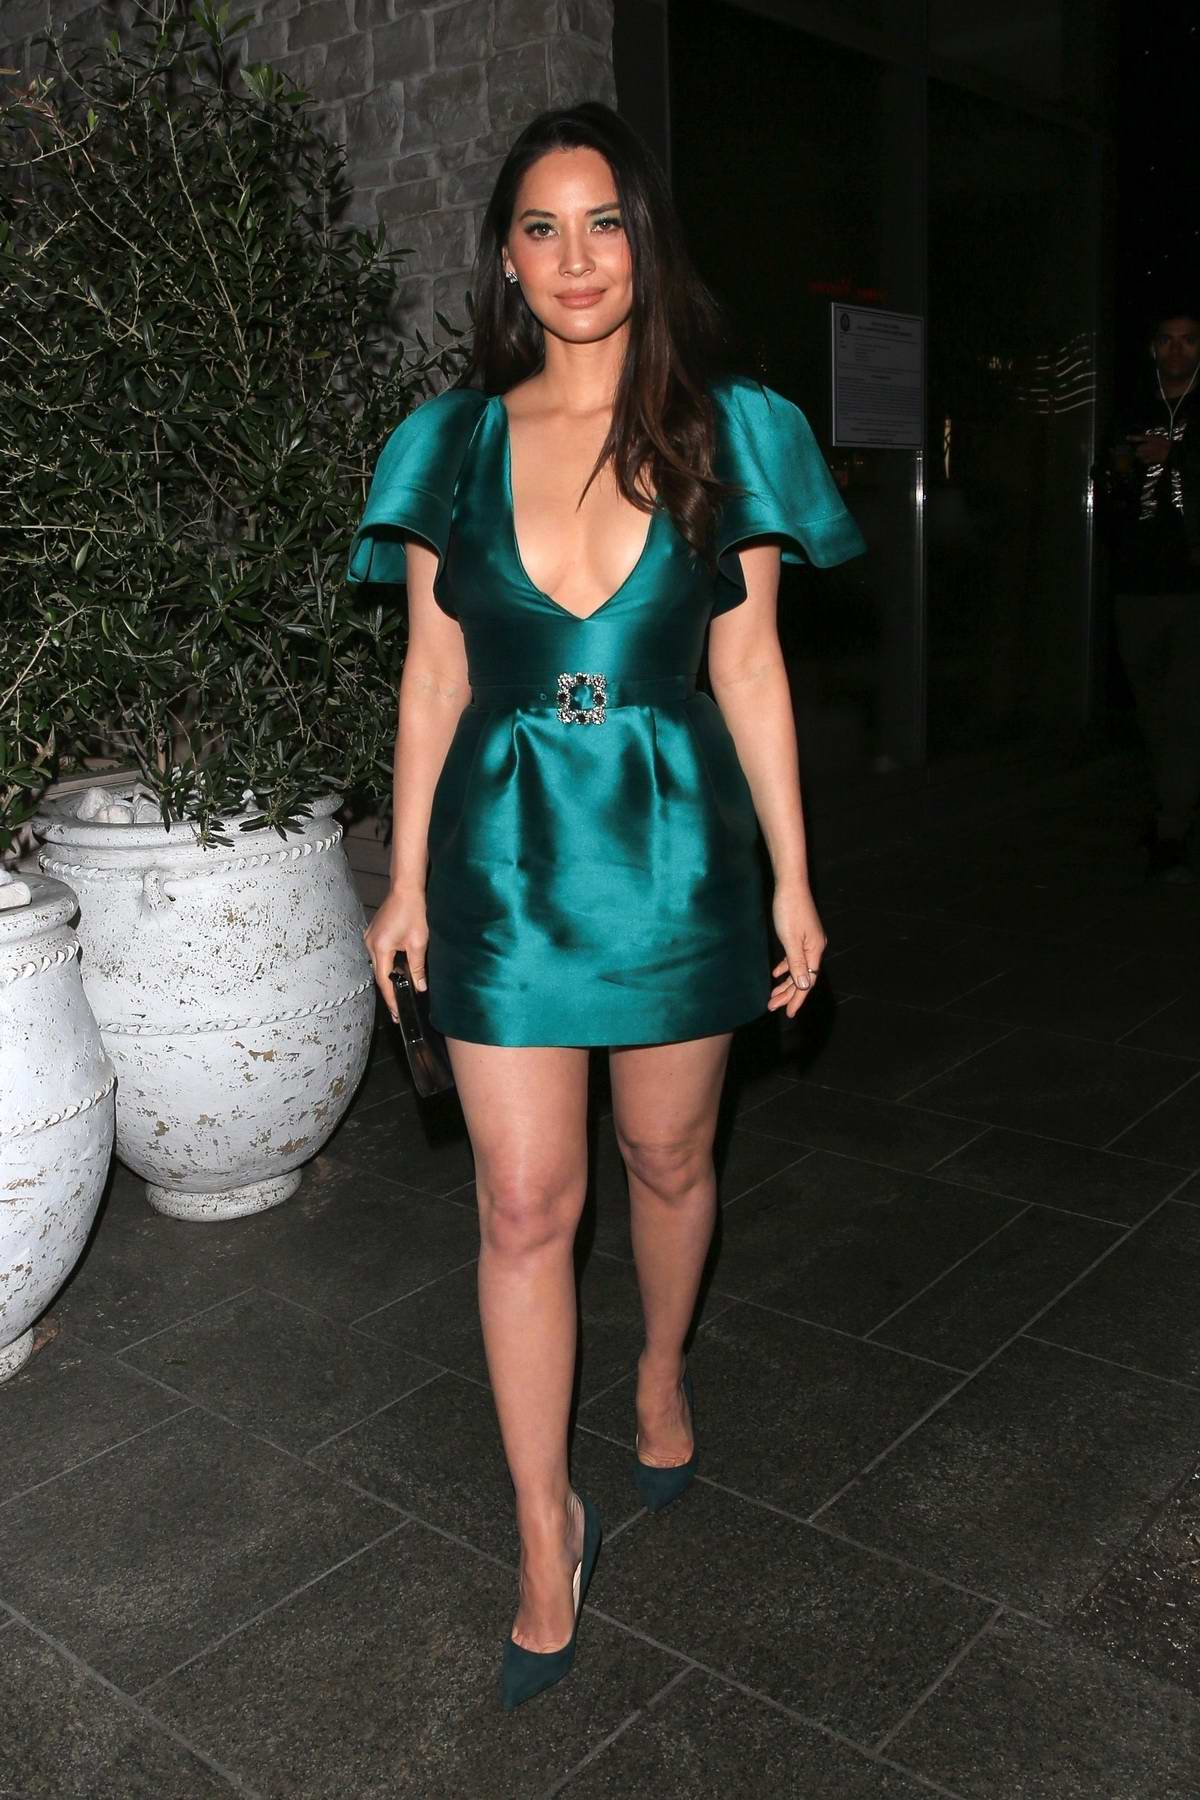 Olivia Munn stuns in a plunging green dress as she leaves Avra in Beverly Hills, Los Angeles